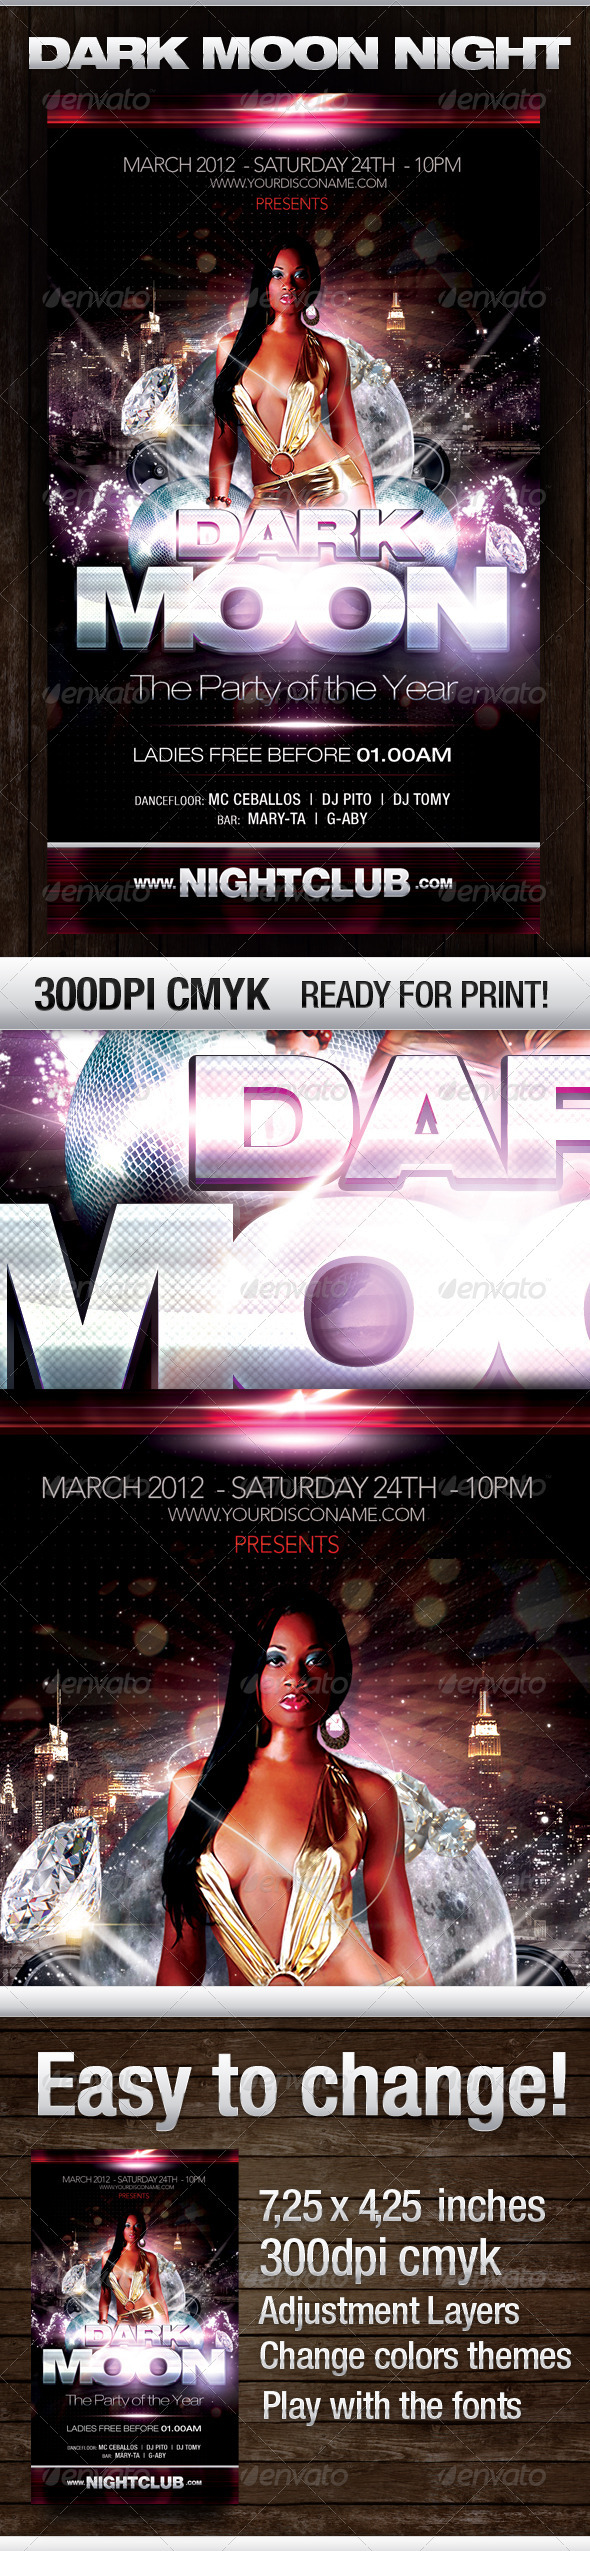 Dark Moon Party Flyer - Flyers Print Templates